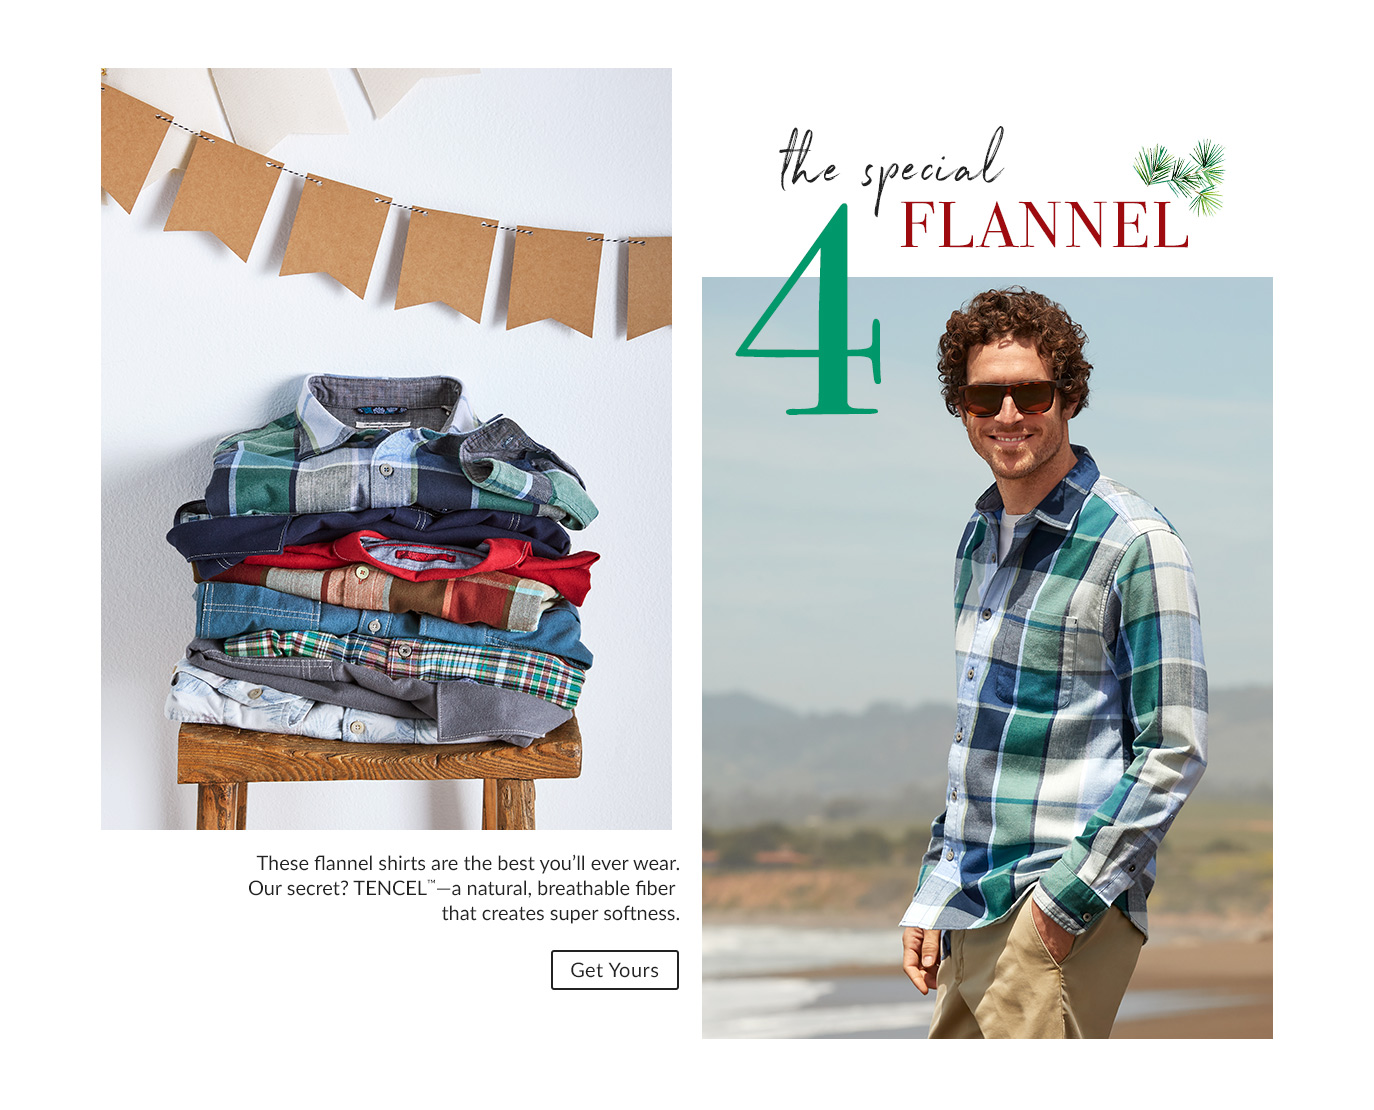 The Special Flannel